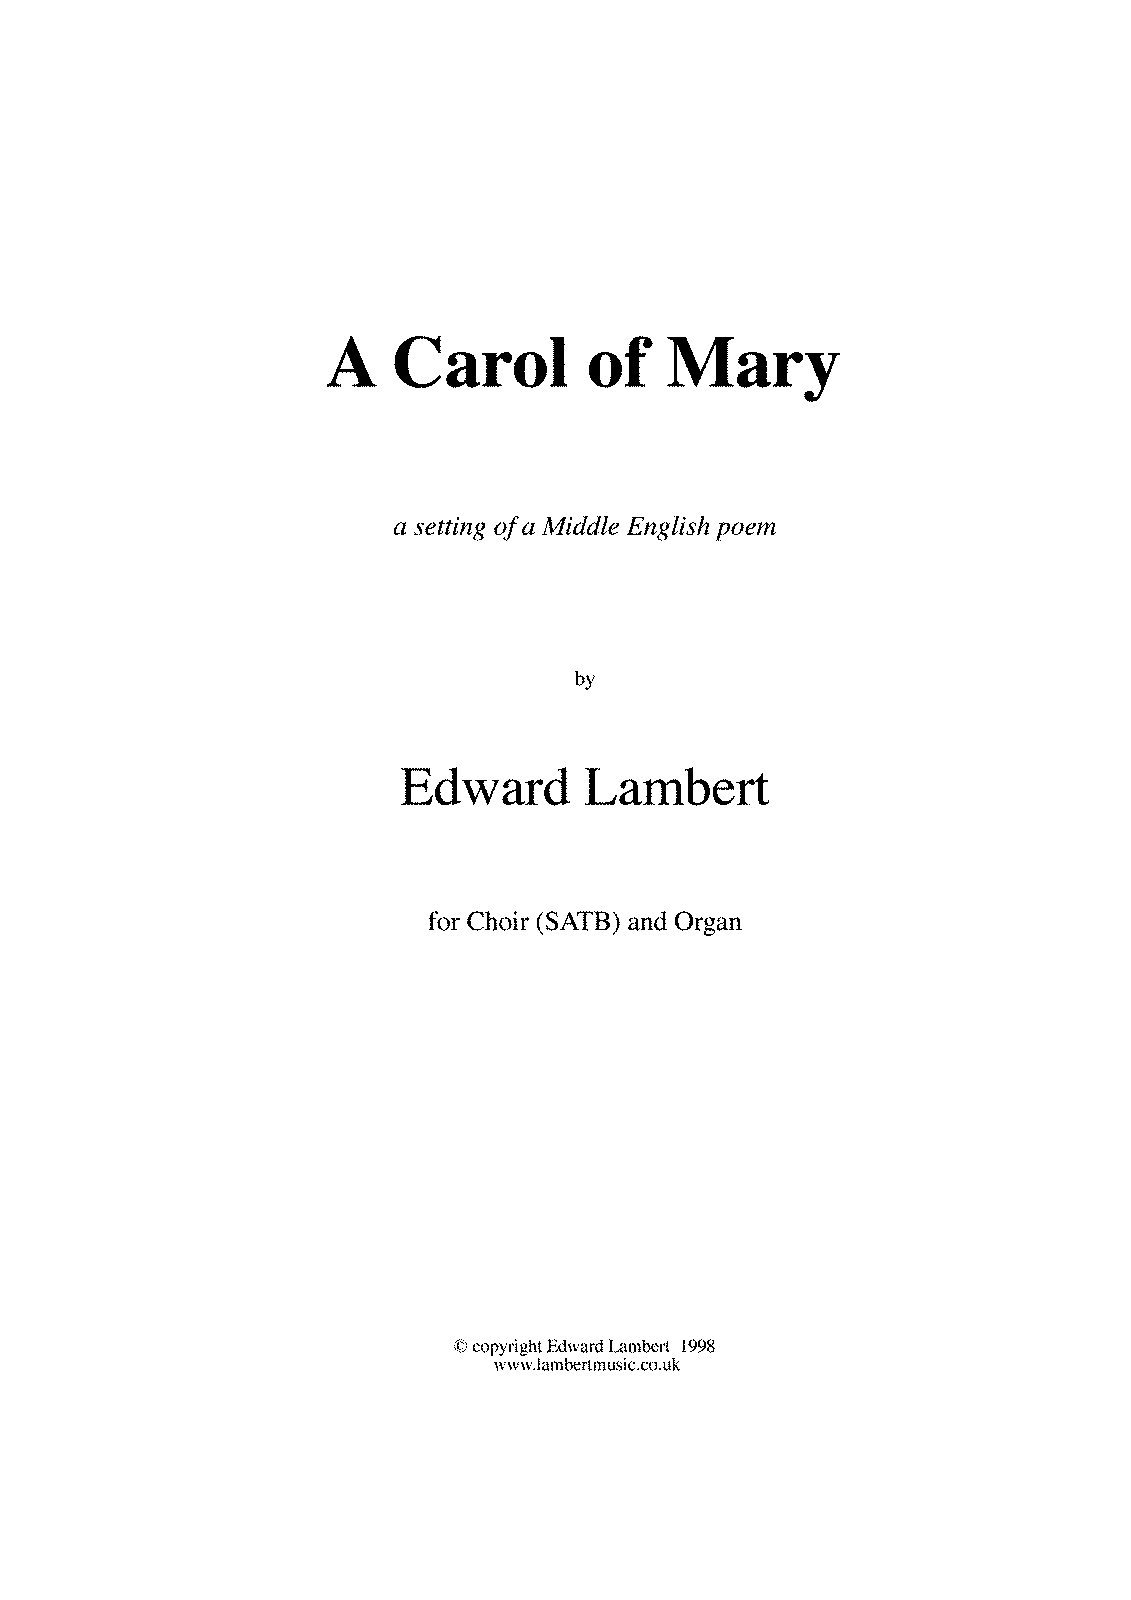 PMLP156889-A Carol of Mary.pdf